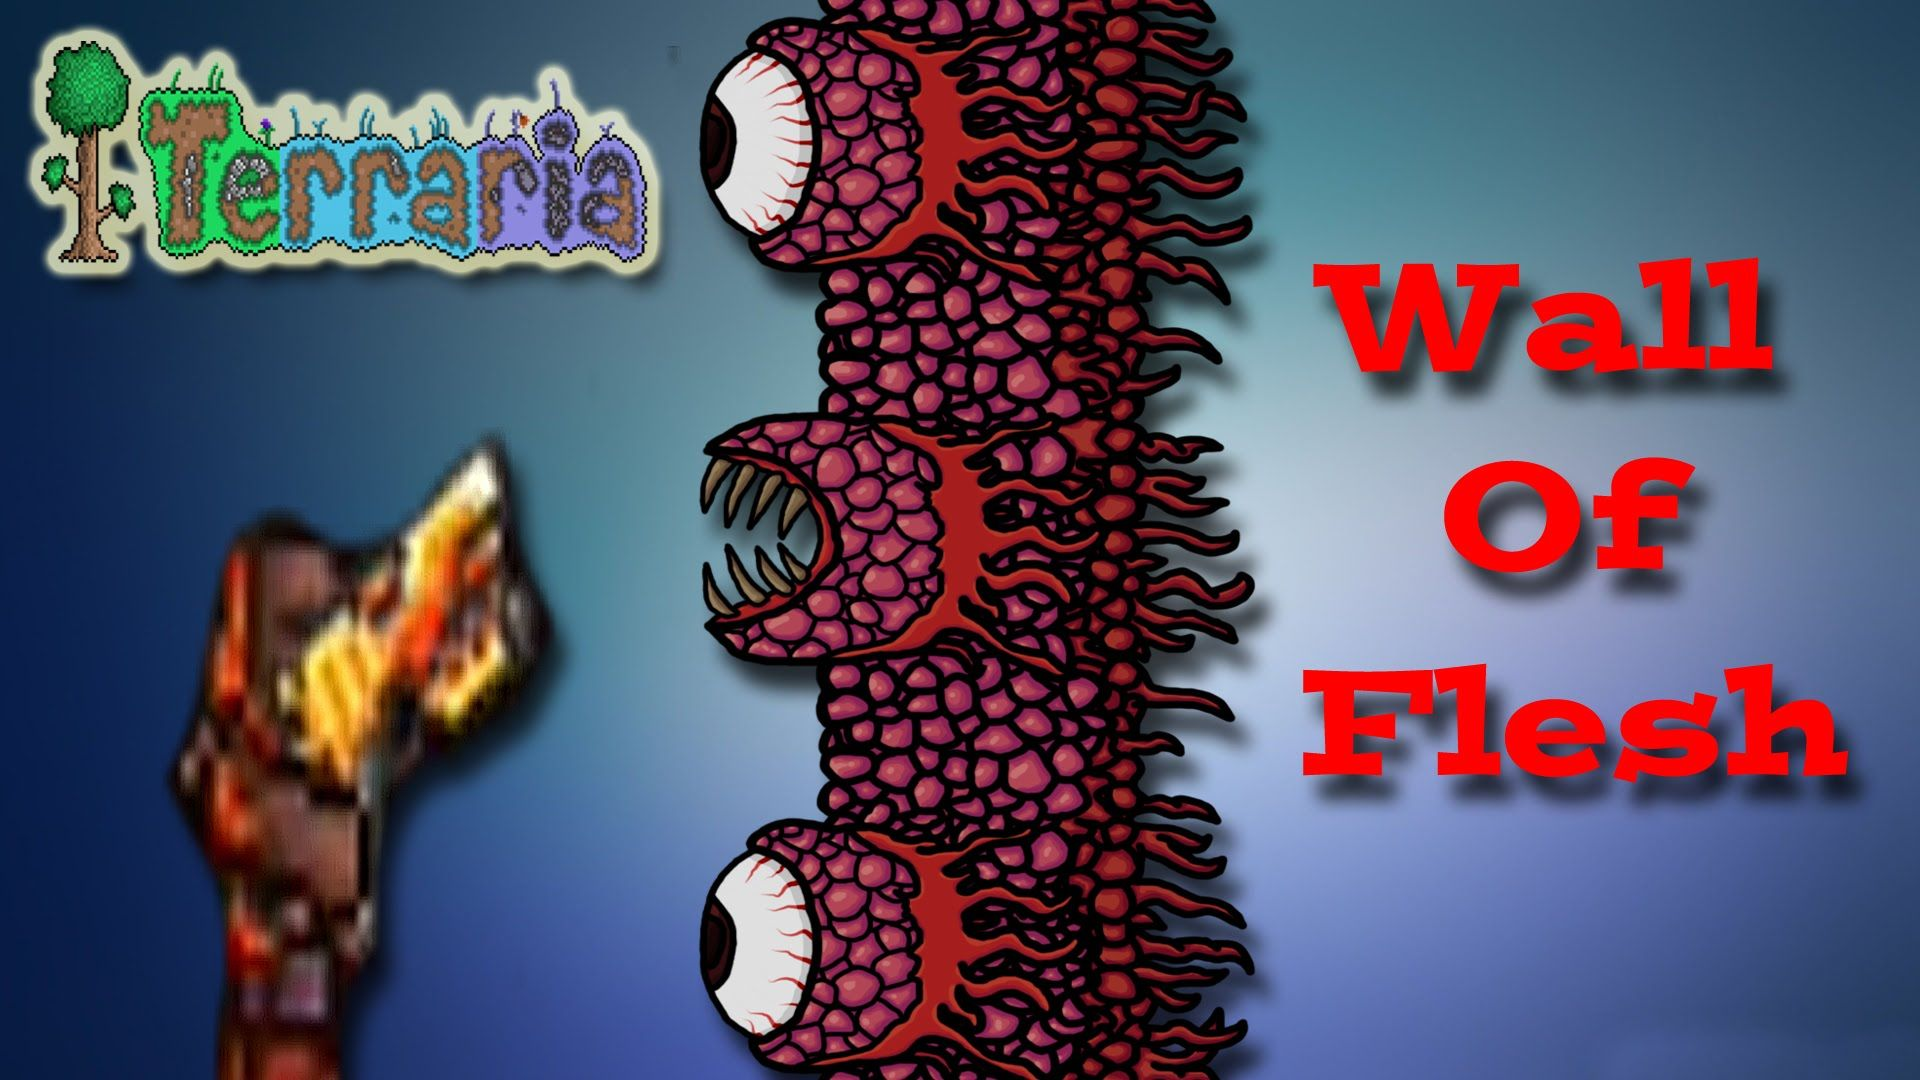 Terraria Ps4 Gameplay Episode 6 Wall Of Flesh Boss Battle Father An Ps4 Gameplay Gameplay Terrarium